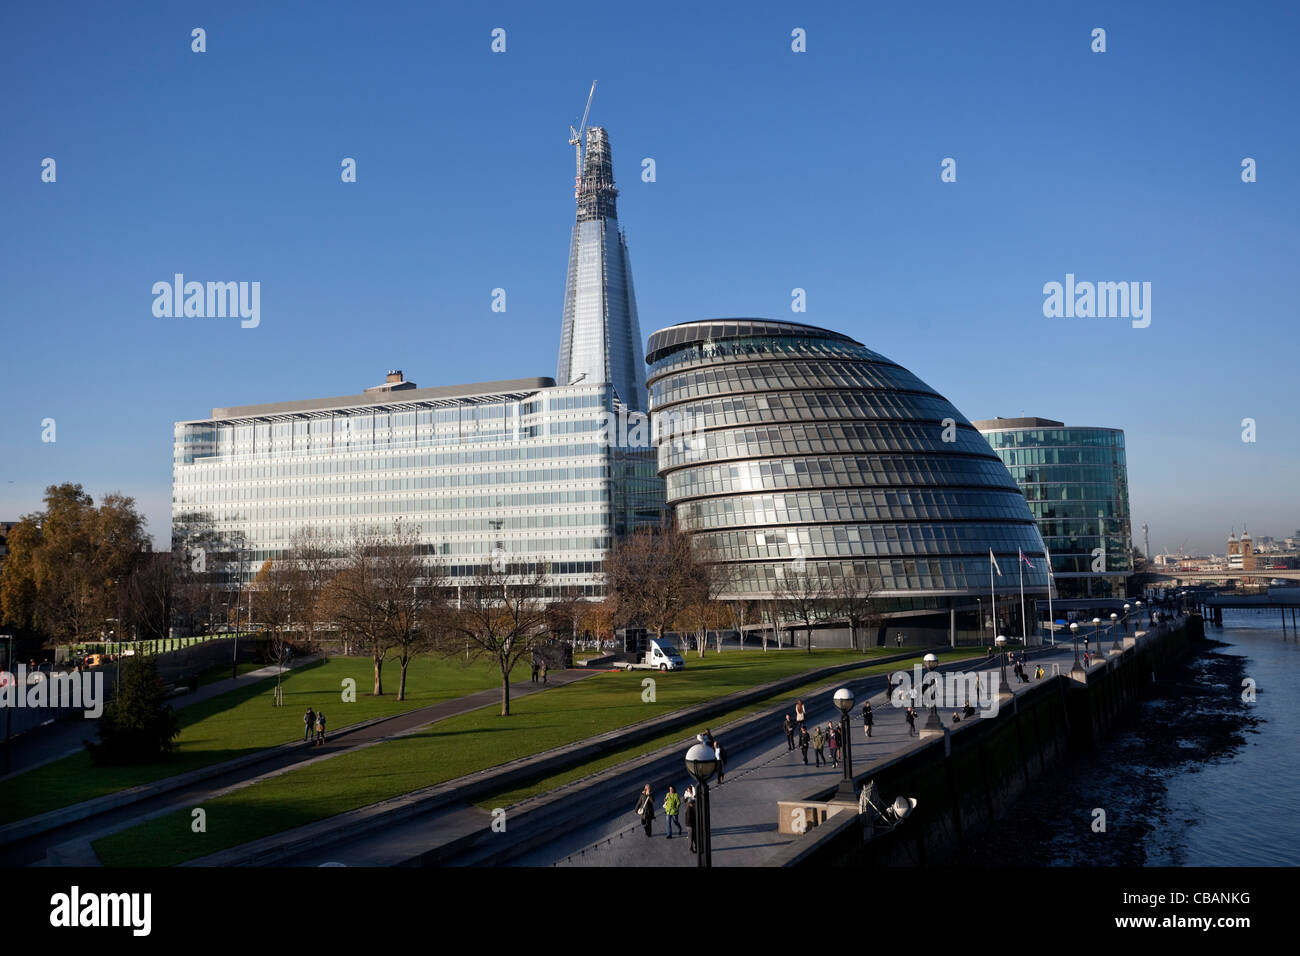 View of the London Assembly Building with the Shard building construction in the backgroung, England, UK, 2011 - Stock Image